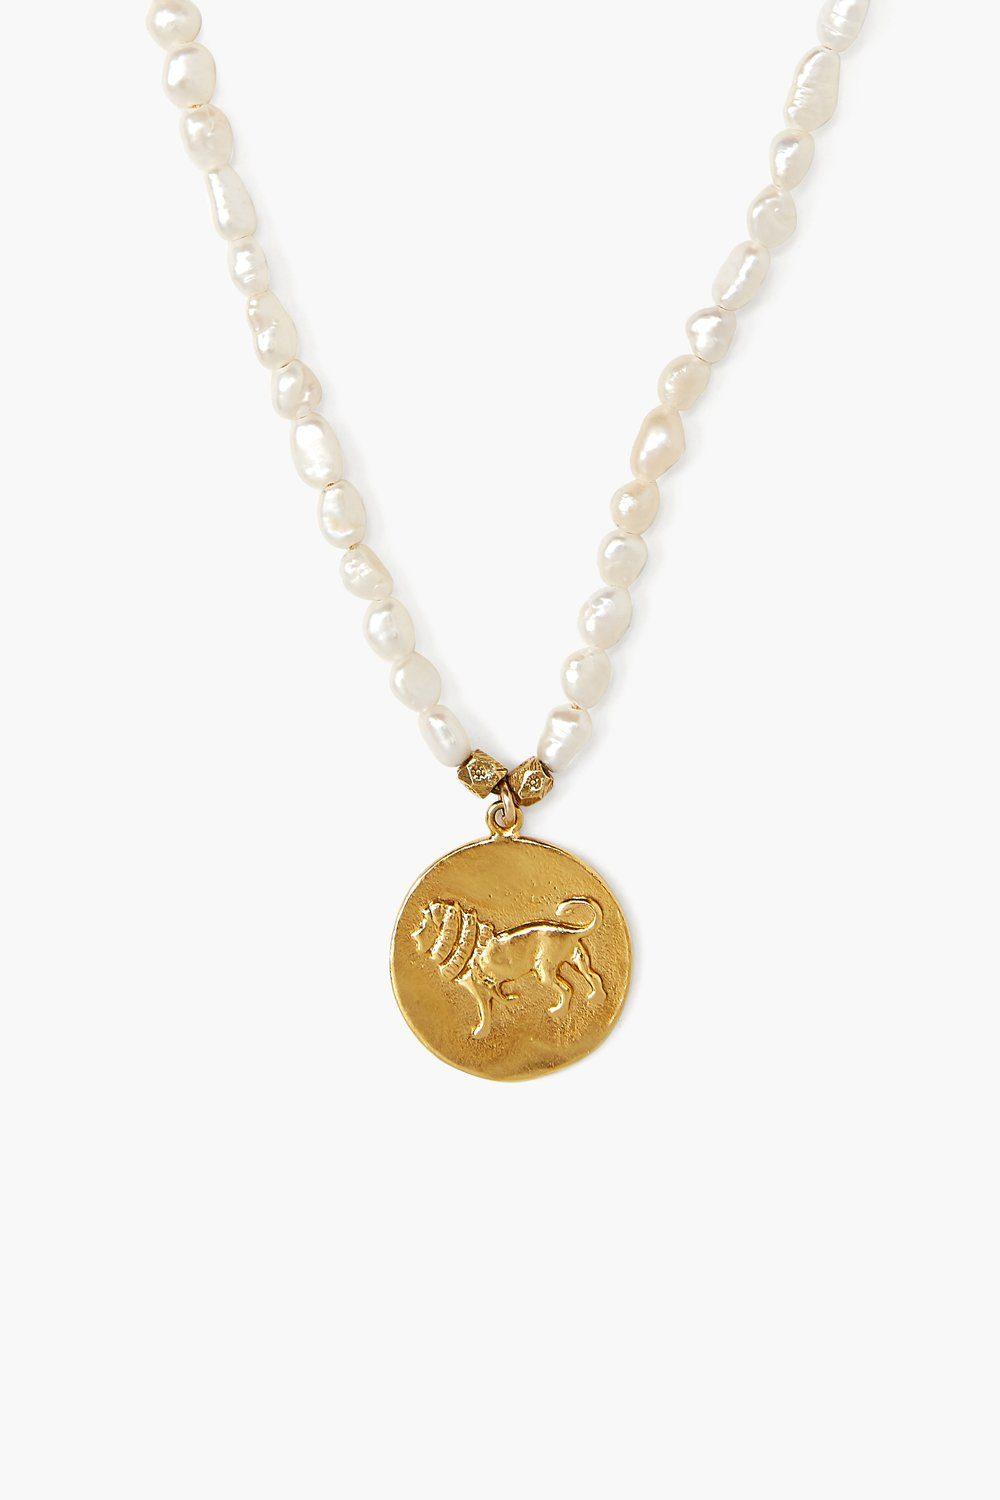 Lion and Pearl Necklace